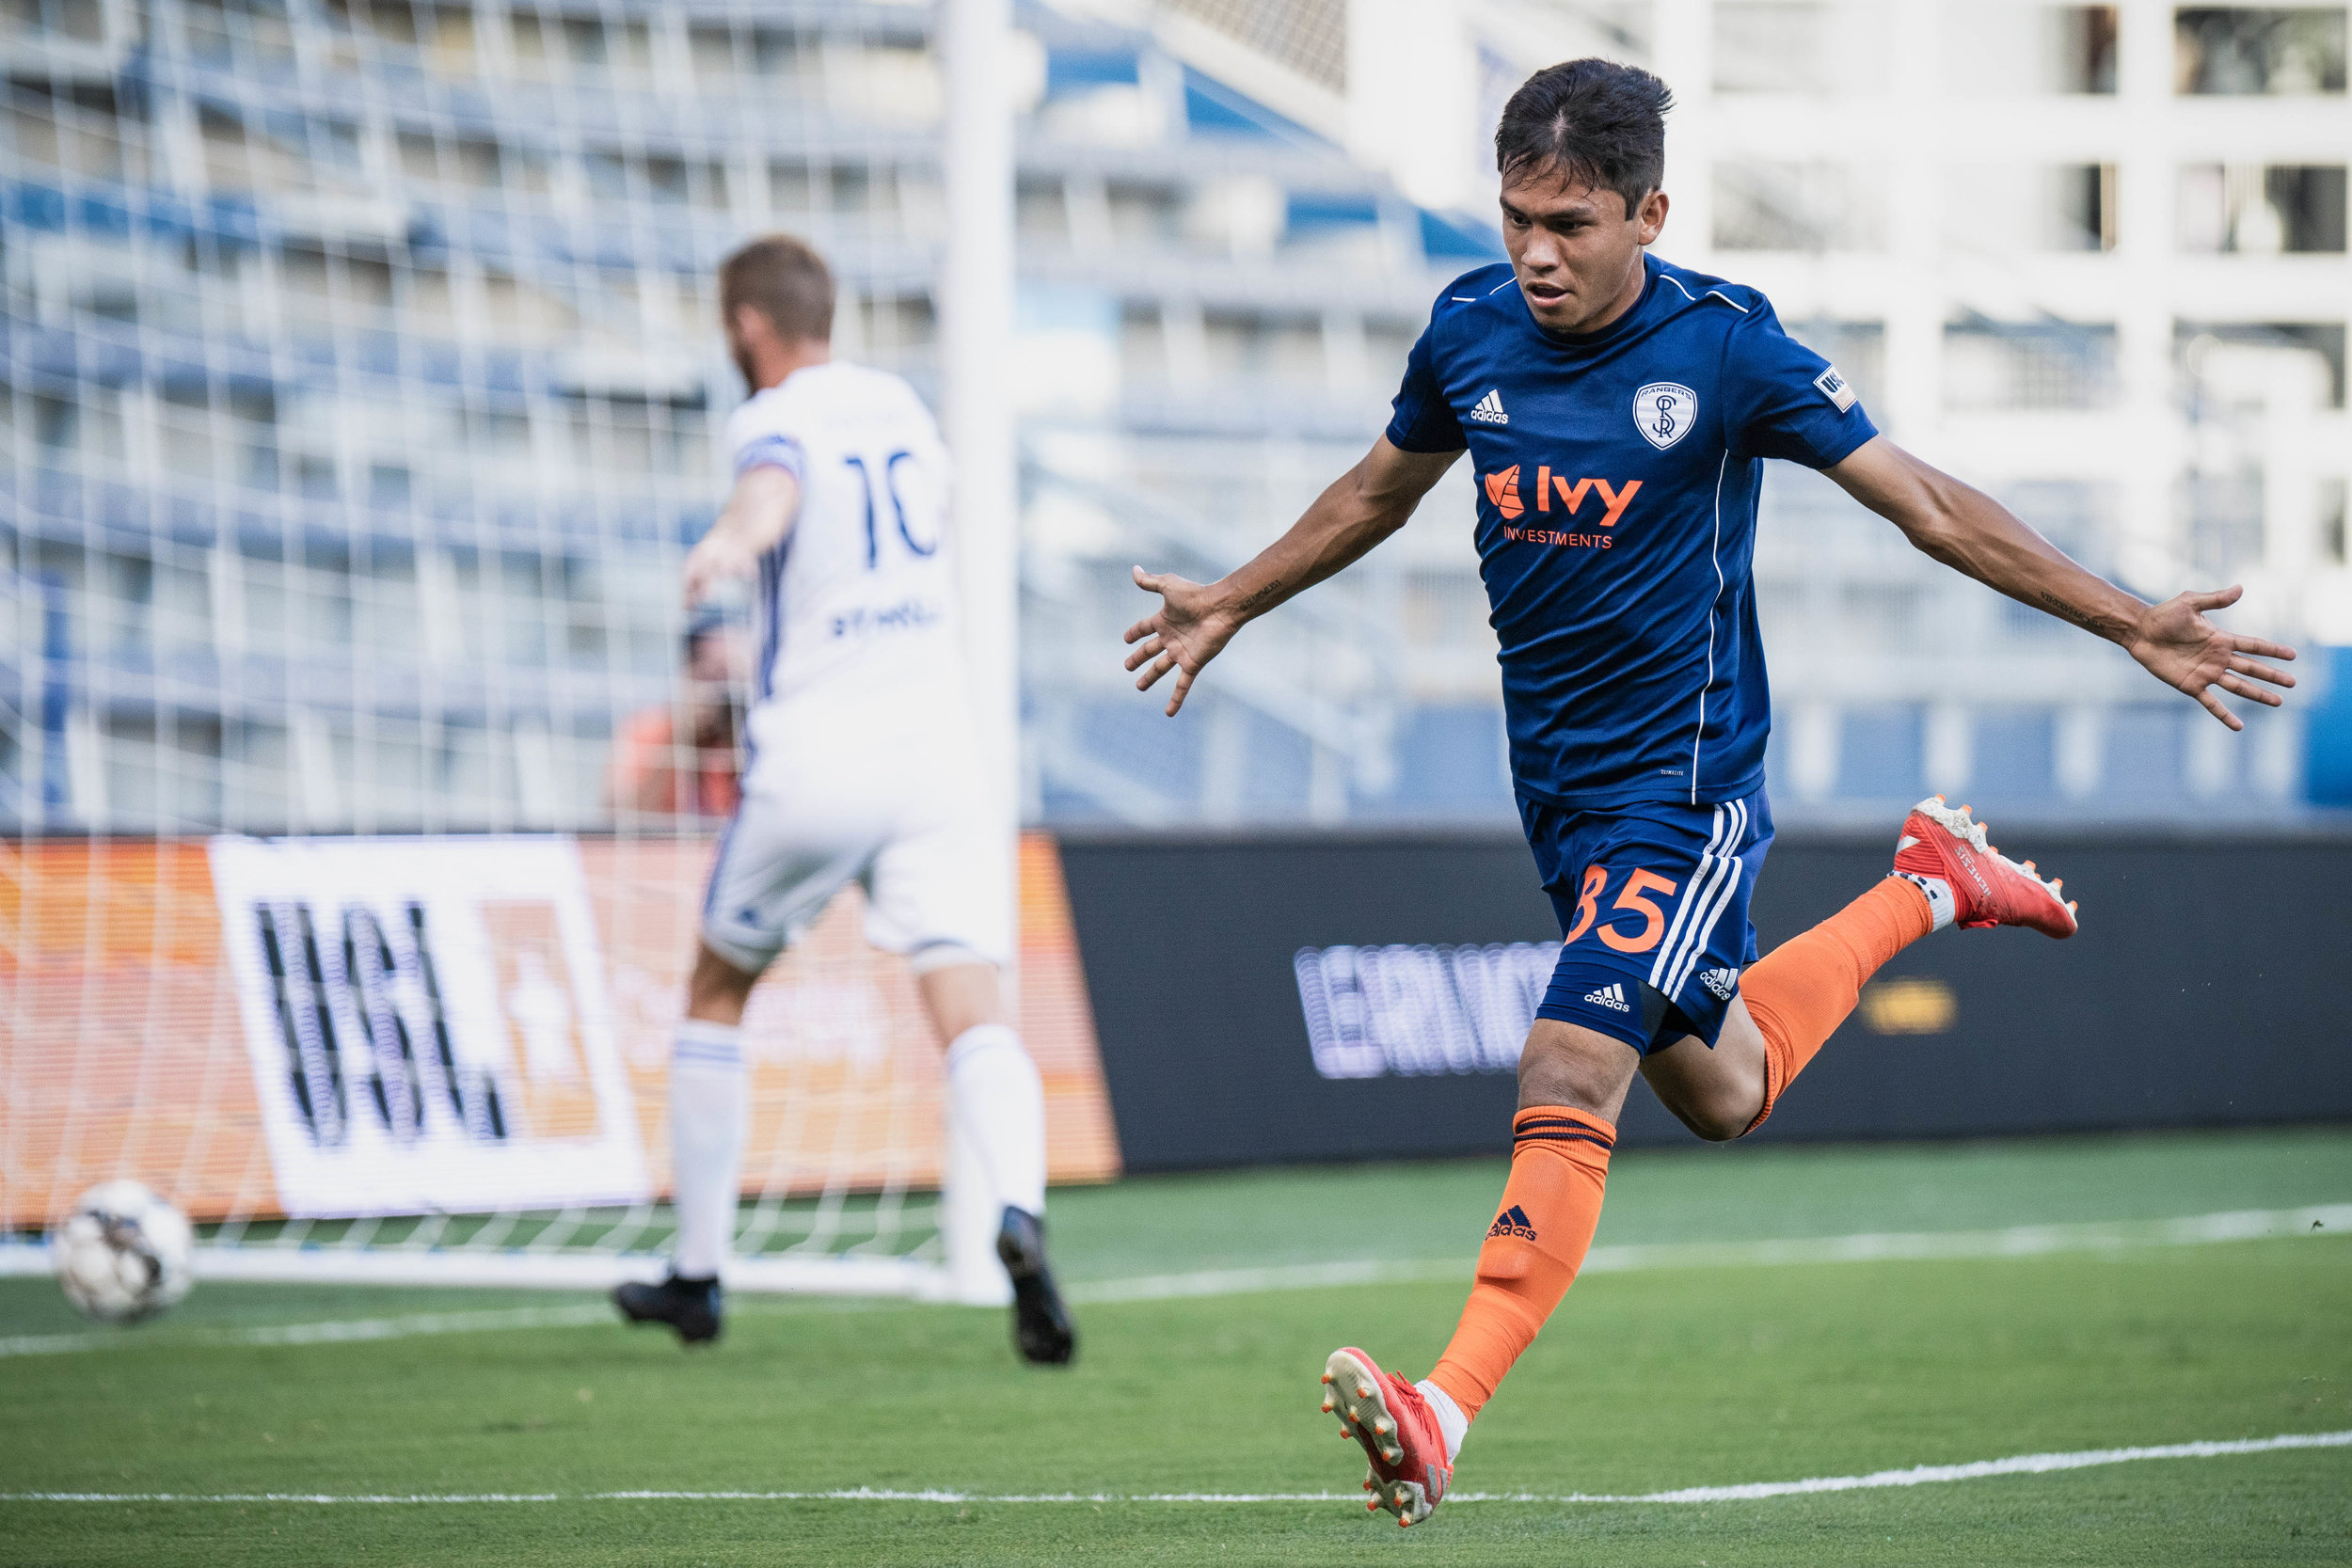 Felipe Hernandez celebrates after scoring in the Swope Park Rangers vs. Hartford Athletic match on Wednesday, July 17, 2019 at Children's Mercy Park in Kansas City, Kansas. The Rangers defeated Hartford 4-3 improving their record to 3-6-9.